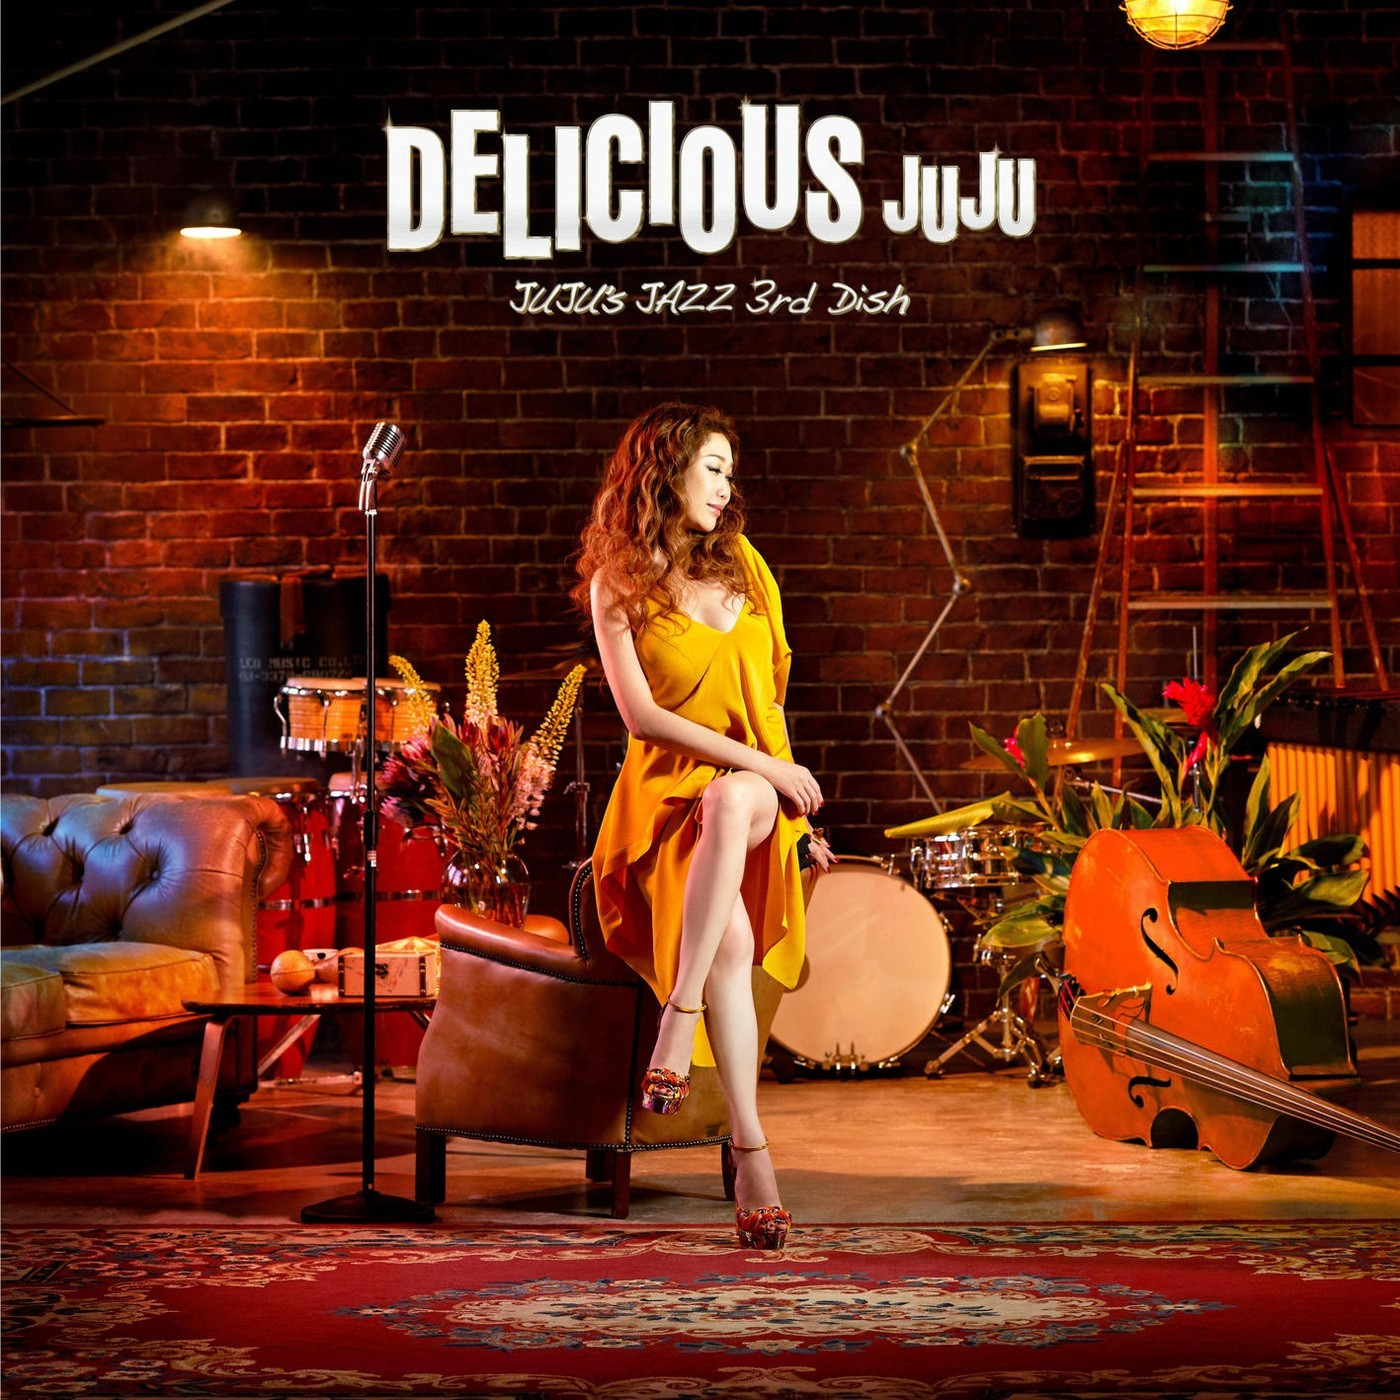 JUJU – DELICIOUS ~JUJU's JAZZ 3rd Dish~ [FLAC + MP3 320 / WEB] [2018.12.05]